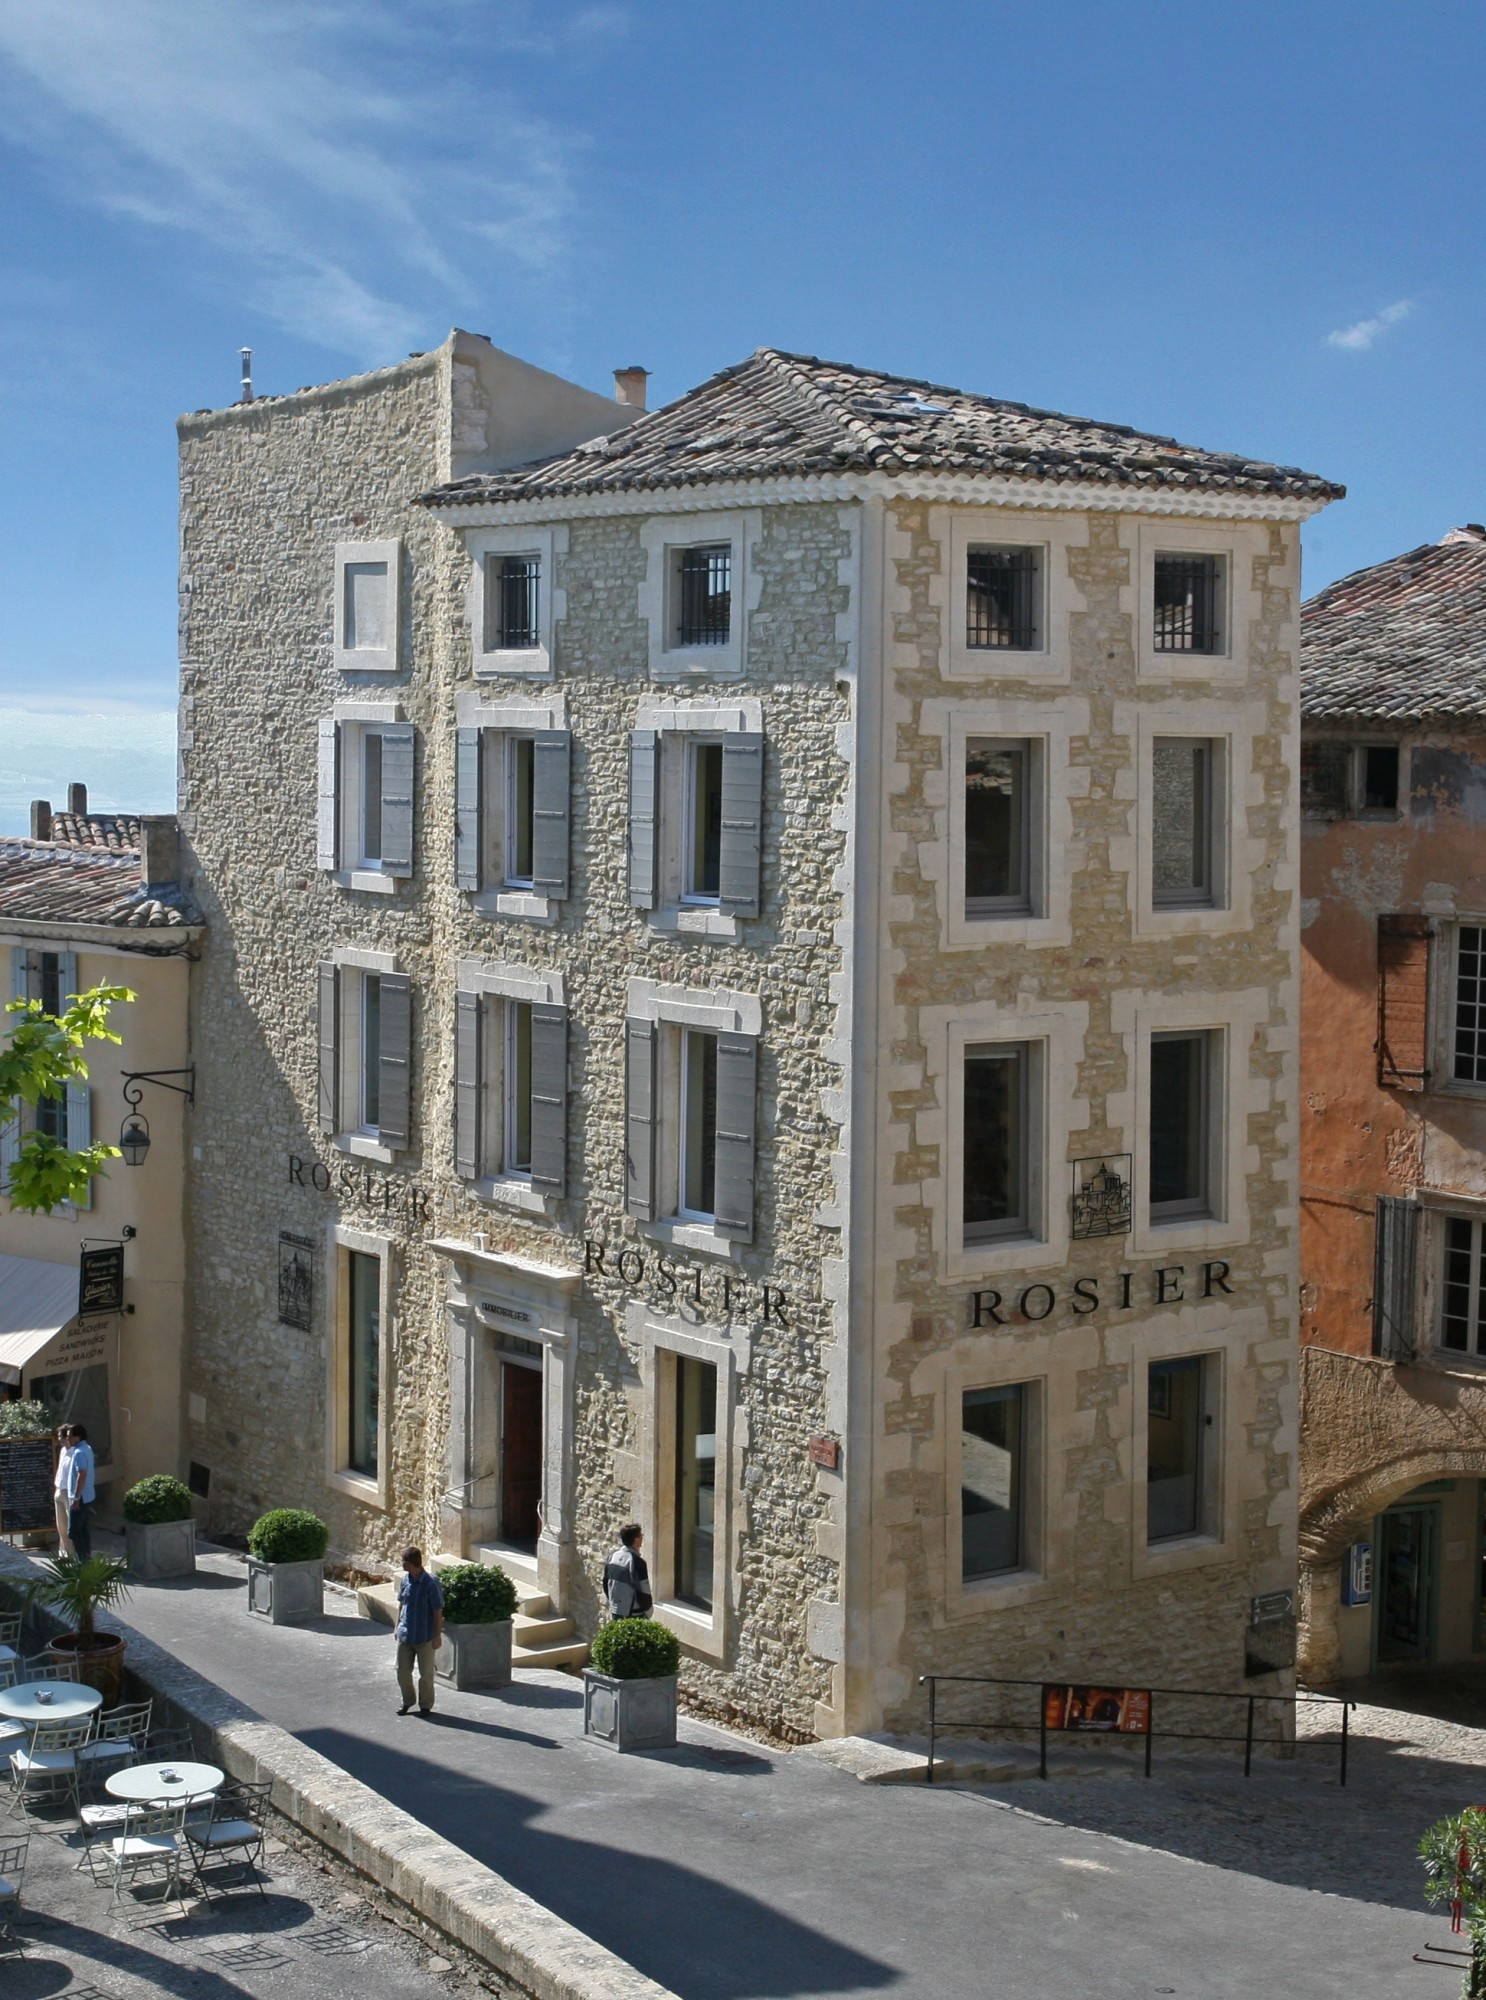 ROSIER Agency, in the historic center of Gordes